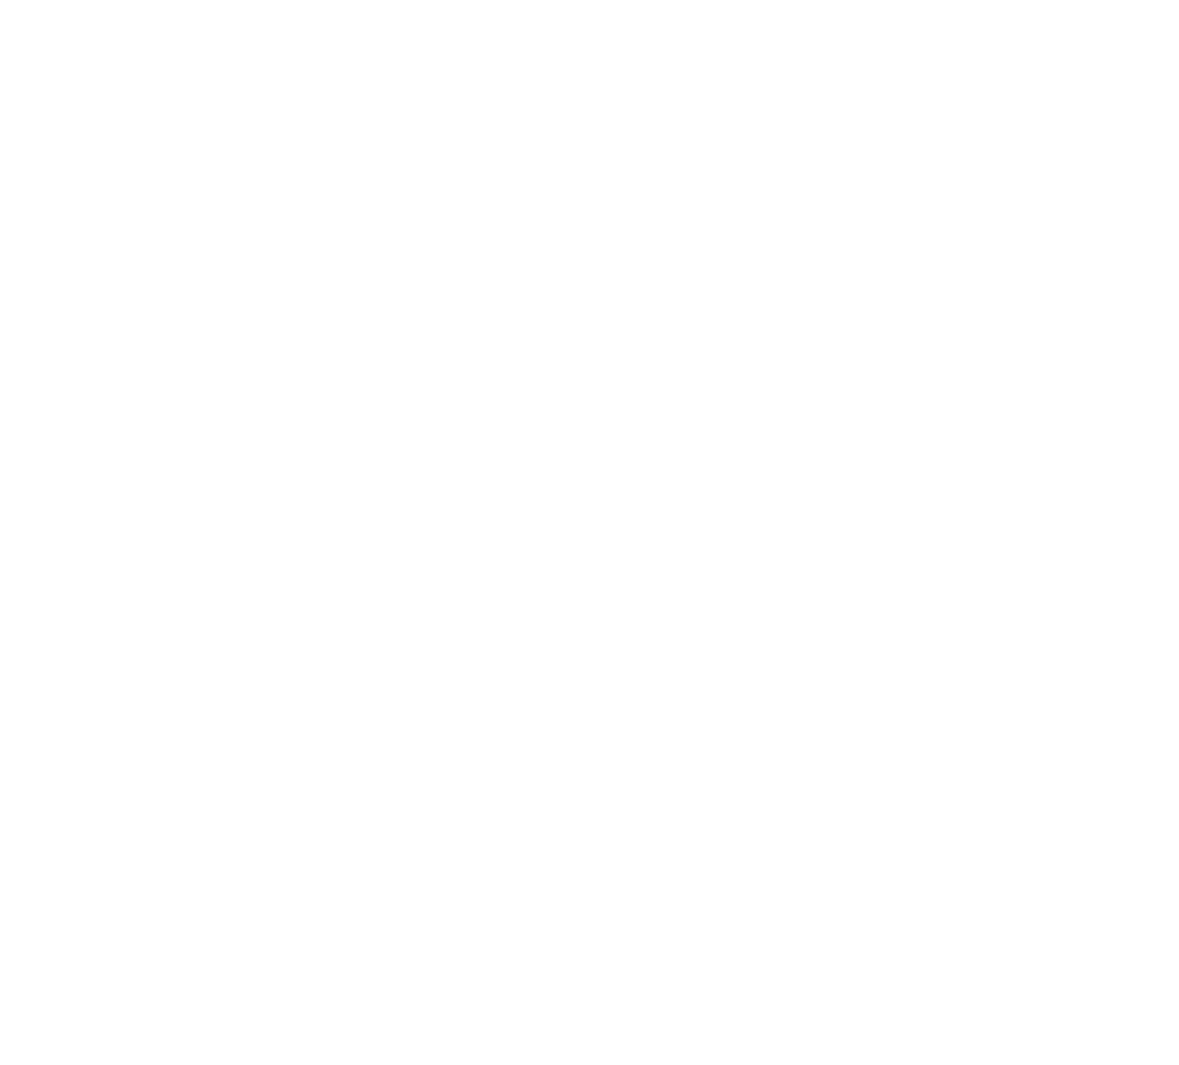 A line illustration of two tins of low VOC paint